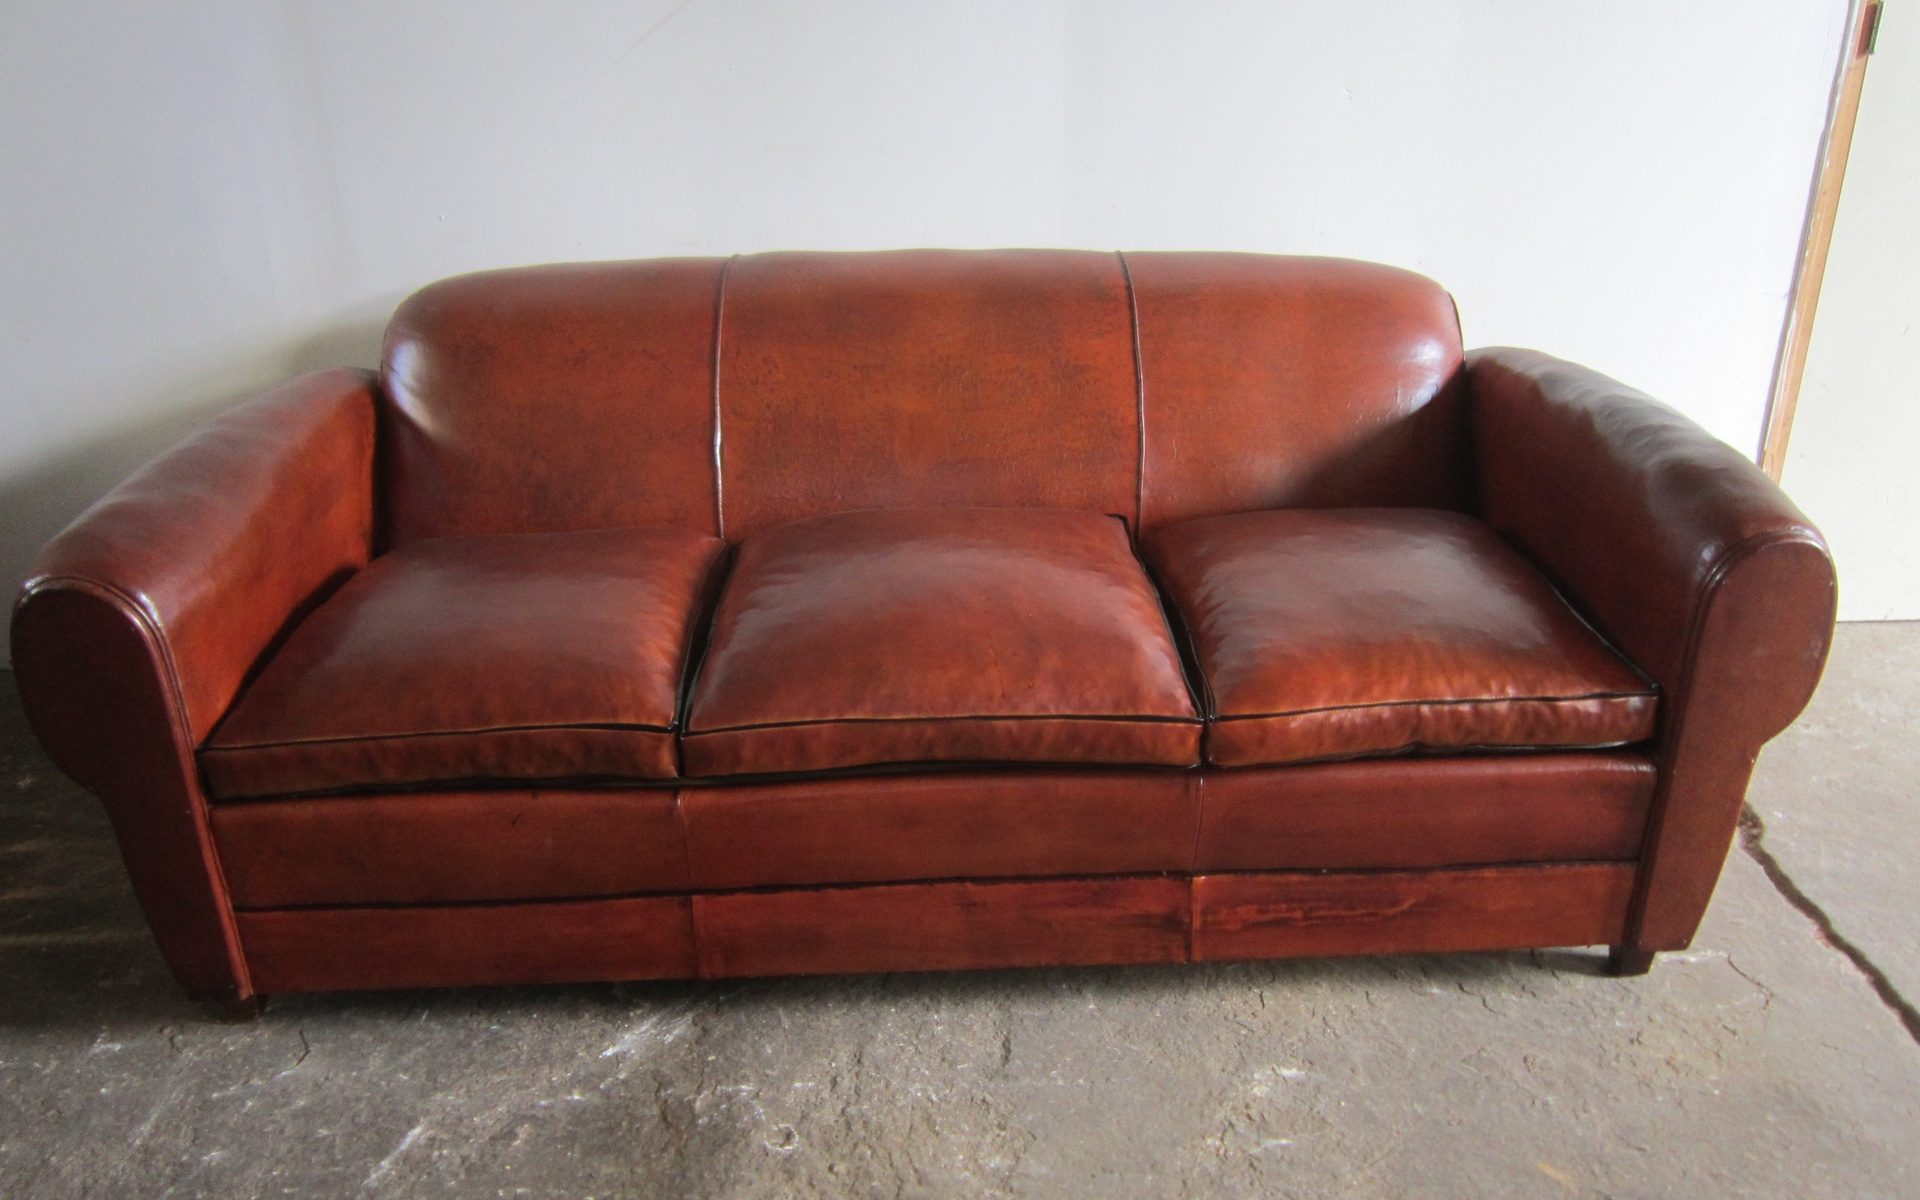 1950s Club couch